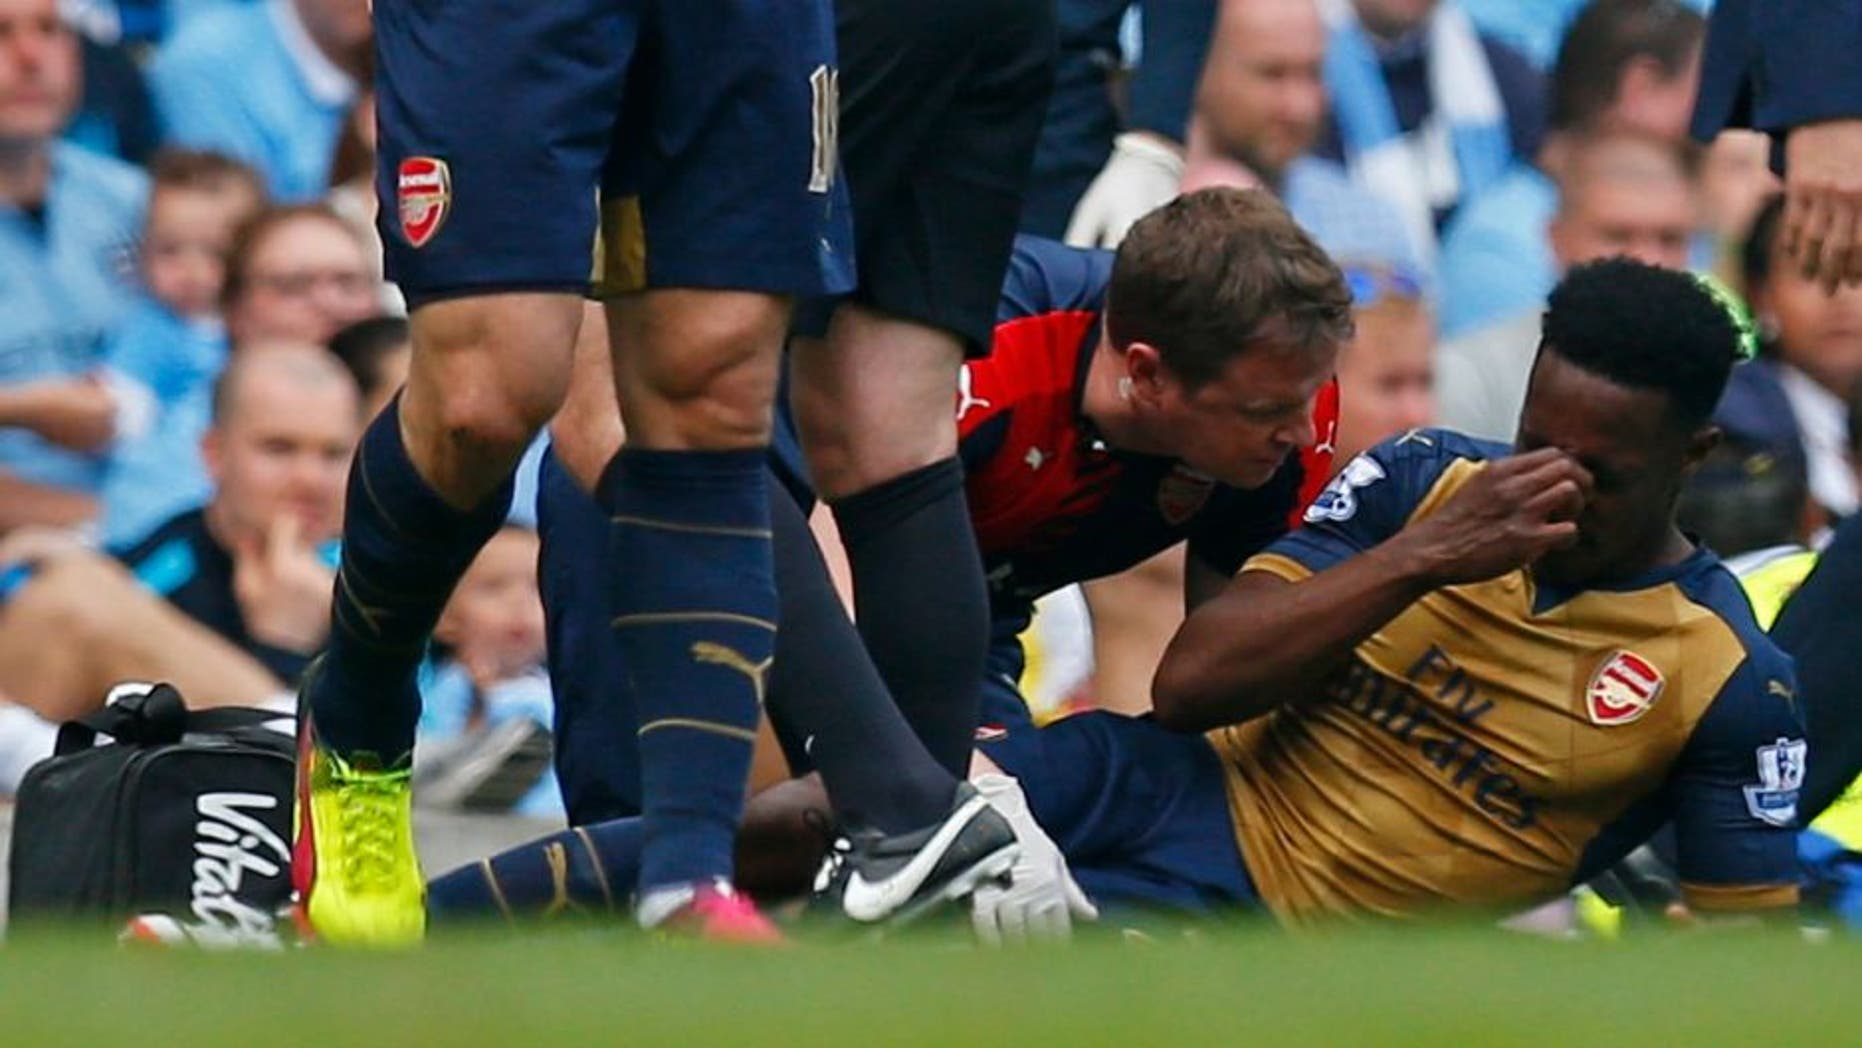 "Britain Soccer Football - Manchester City v Arsenal - Barclays Premier League - Etihad Stadium - 8/5/16 Arsenal's Danny Welbeck receives treatment after sustaining an injury before being substituted Action Images via Reuters / Jason Cairnduff Livepic EDITORIAL USE ONLY. No use with unauthorized audio, video, data, fixture lists, club/league logos or ""live"" services. Online in-match use limited to 45 images, no video emulation. No use in betting, games or single club/league/player publications. Please contact your account representative for further details."